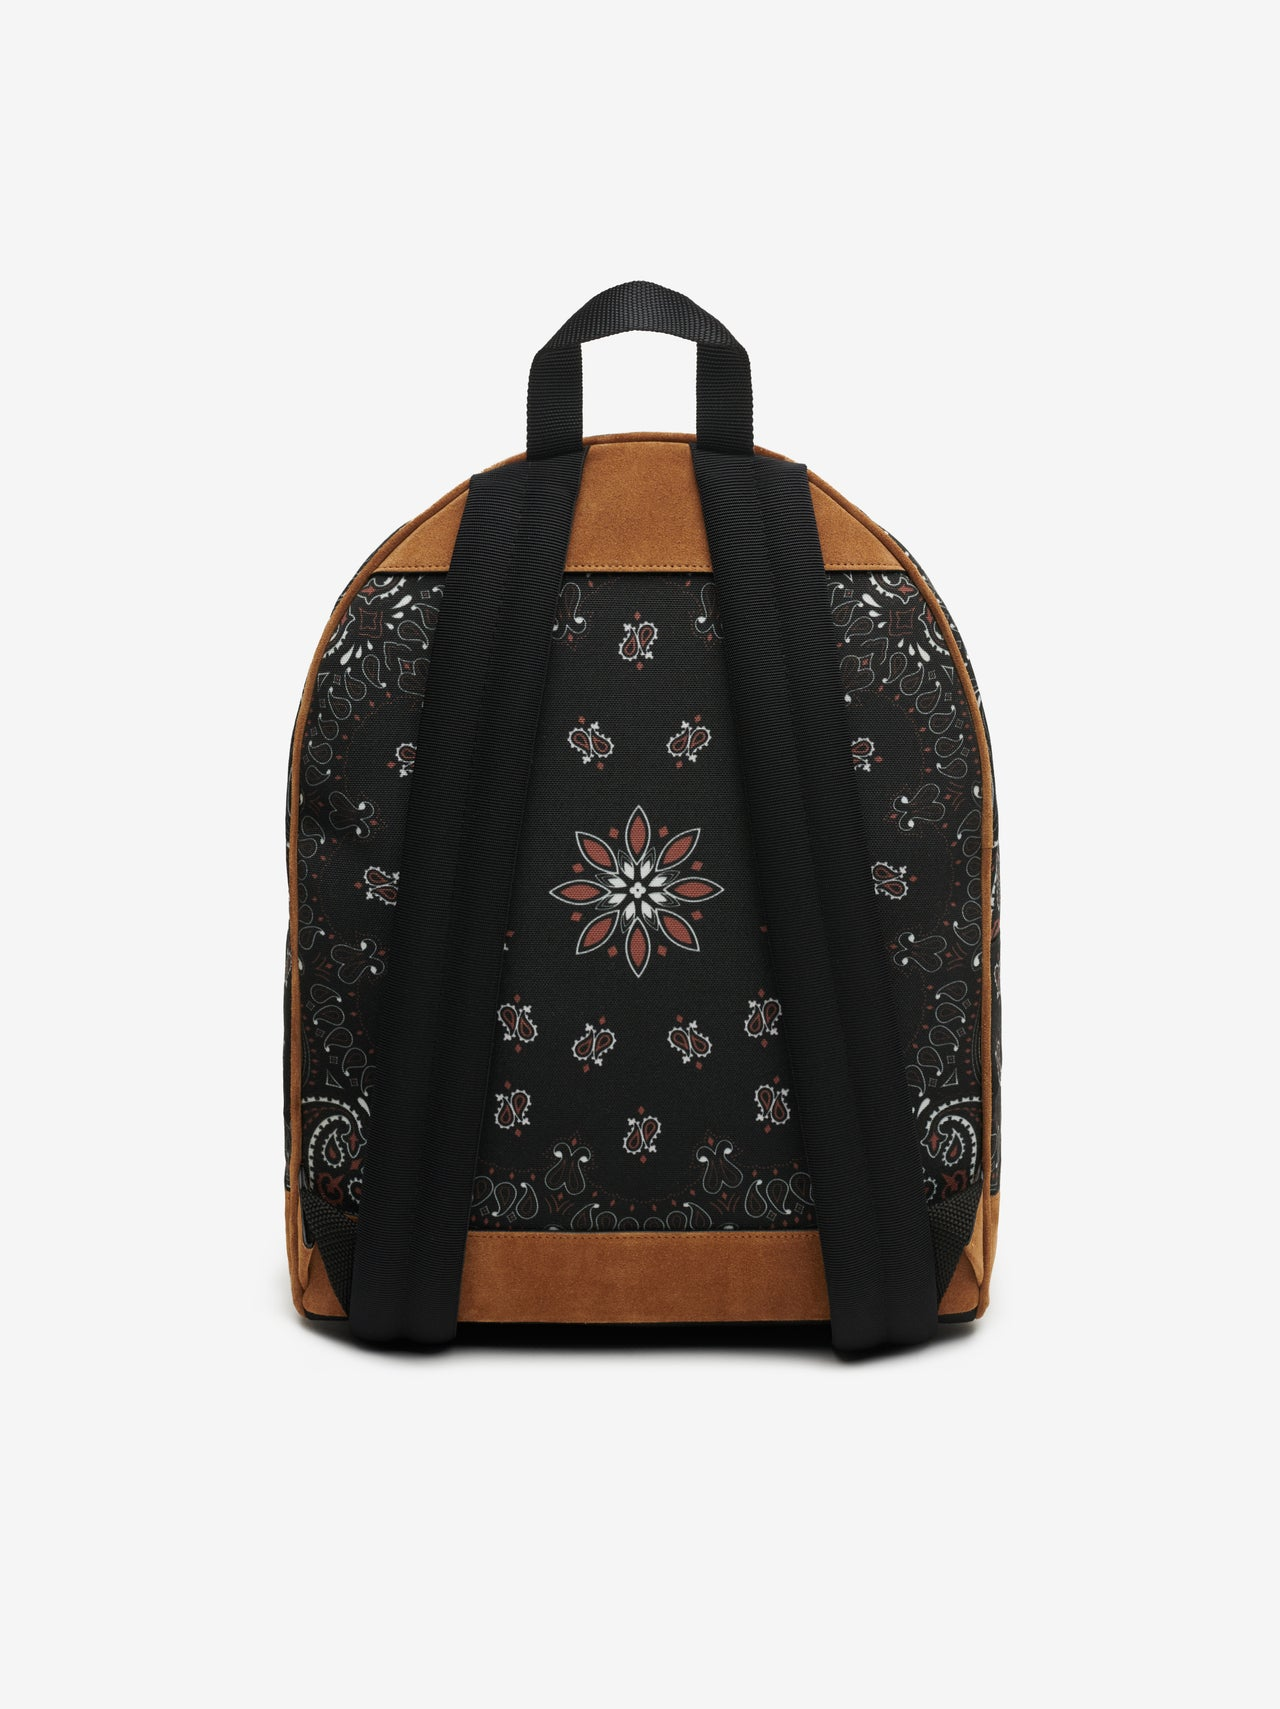 CANVAS / SUEDE BANDANA BACKPACK - BLACK / TAN